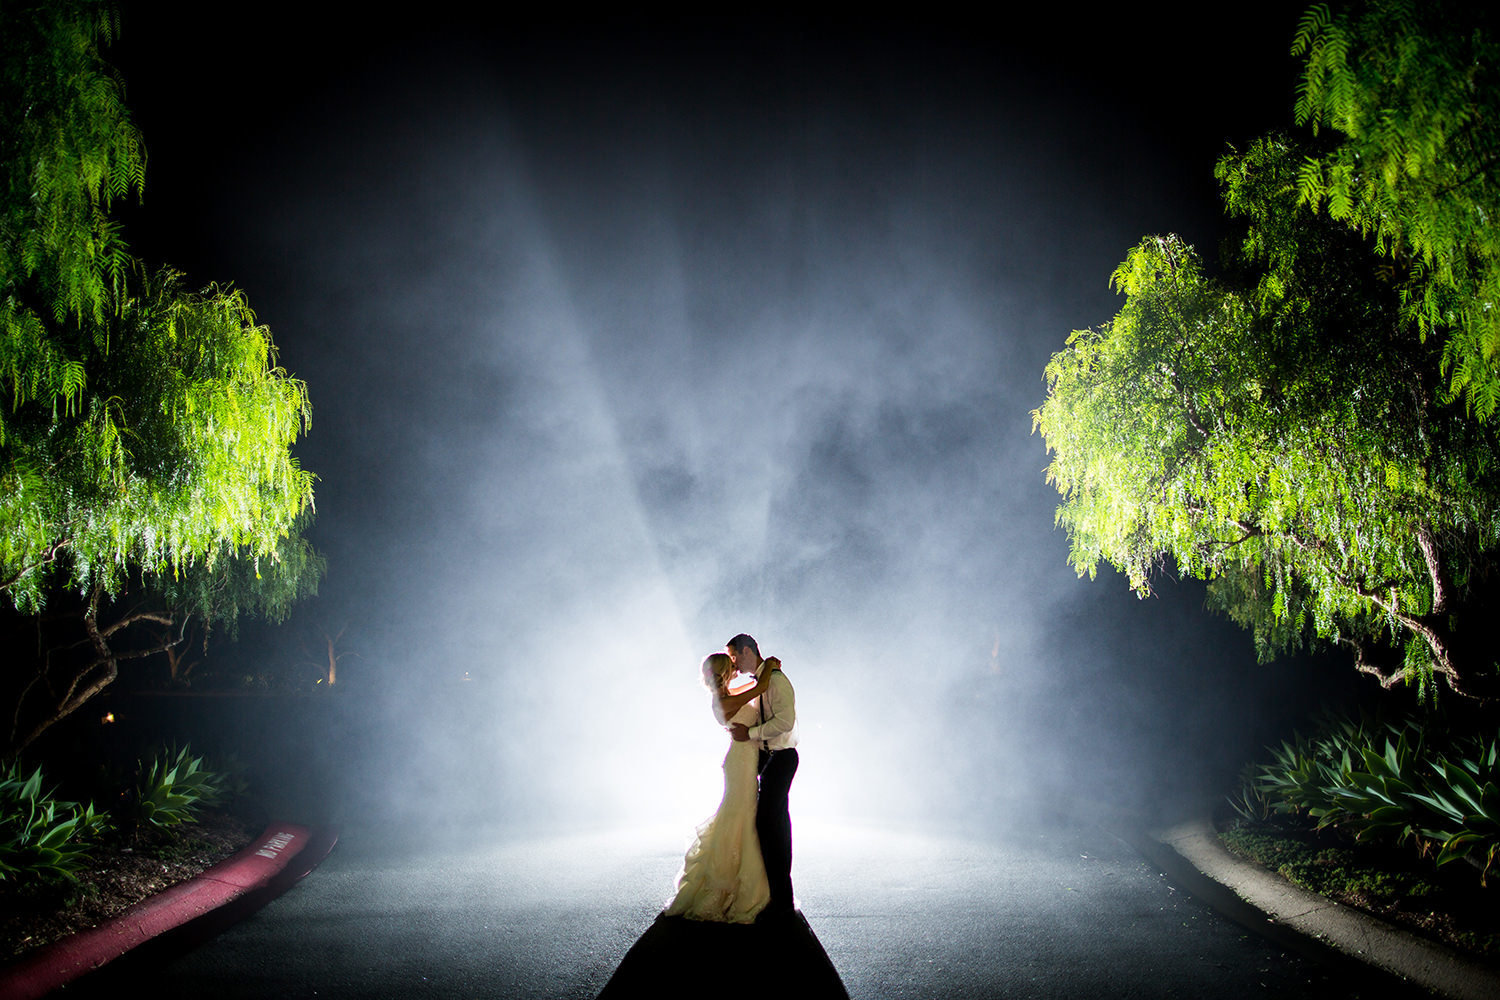 Foggy night time portrait of bride and groom